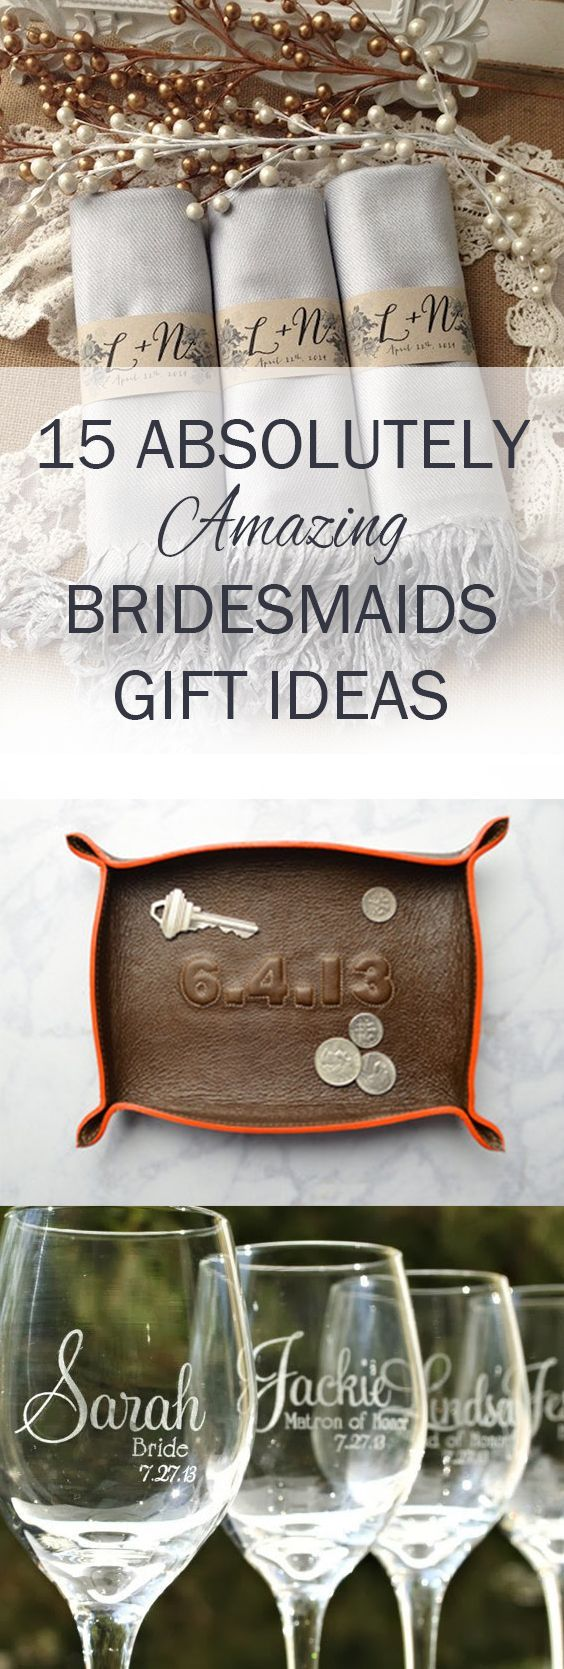 Bridesmaids, Bridesmaids Gifts, Gifts For Her, Gift Ideas, Popular Pin, Wedding Gifts, Wedding DIYs, Dream Wedding, Wedding Planning, Unique Bridesmaid Gift Ideas, Wedding Gift Hacks, What to Get Bridesmaid